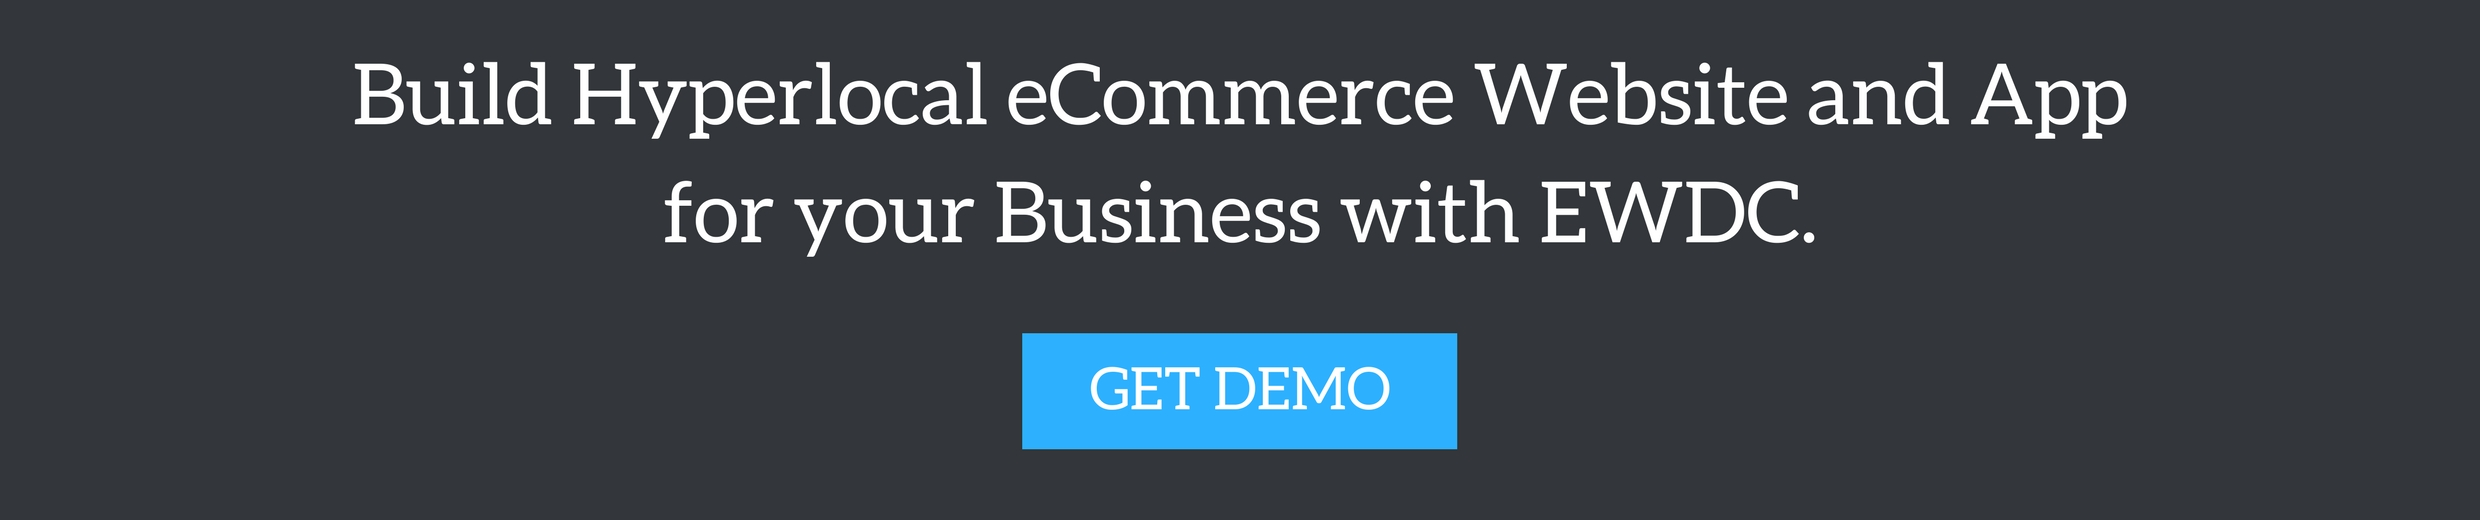 Build Hyperlocal eCommerce Website and App